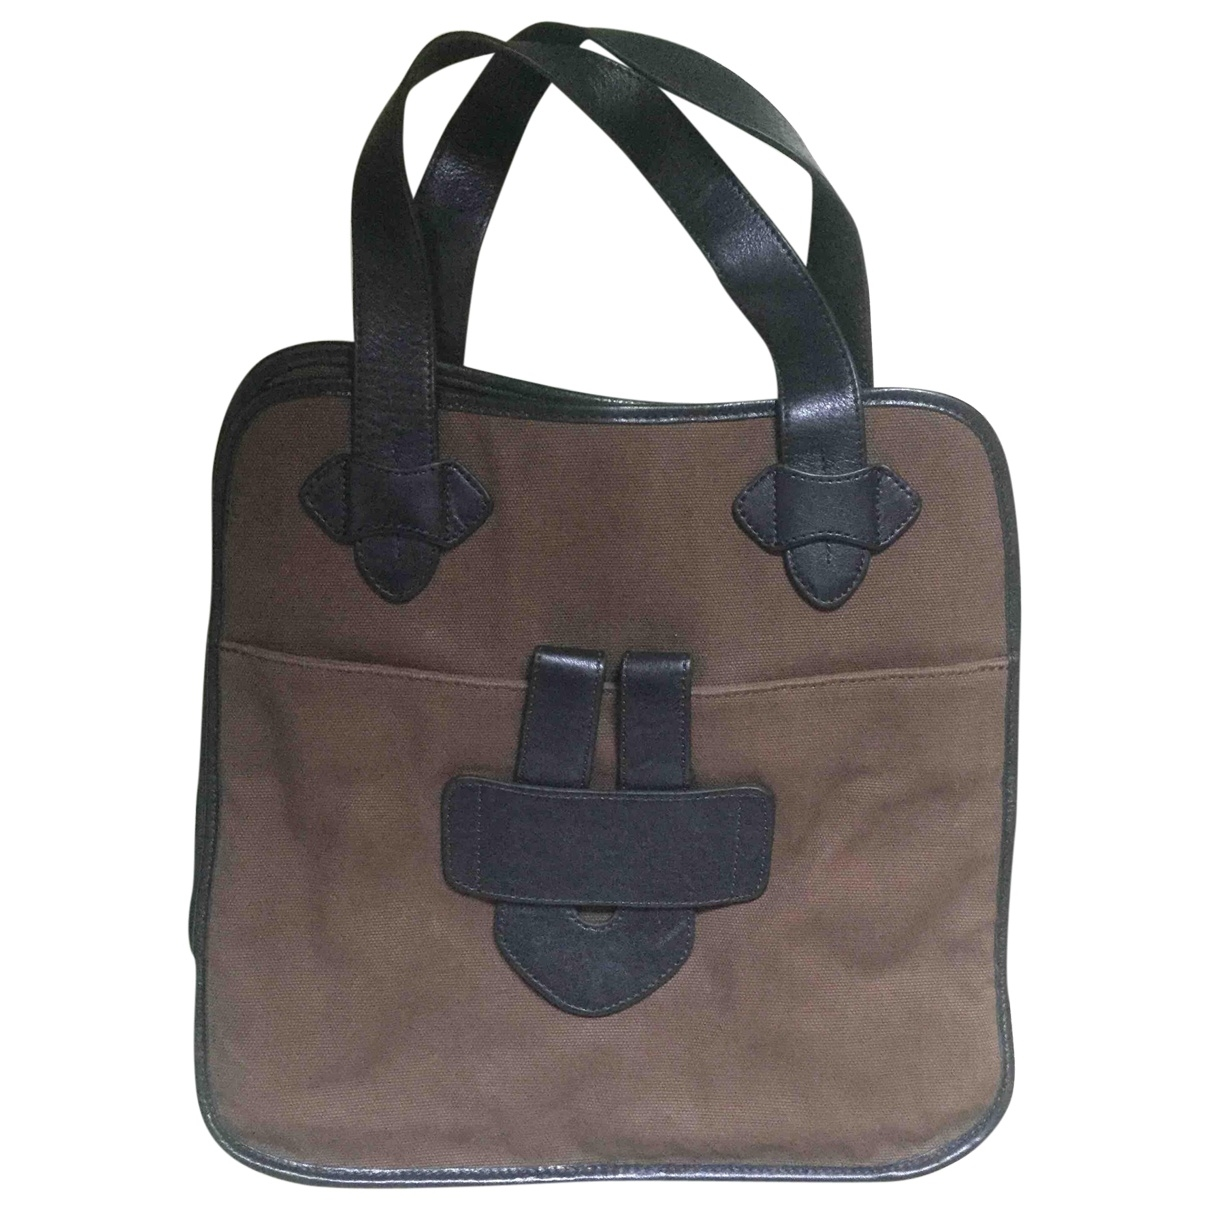 Bolso de mano en Algodon Marron Tila March